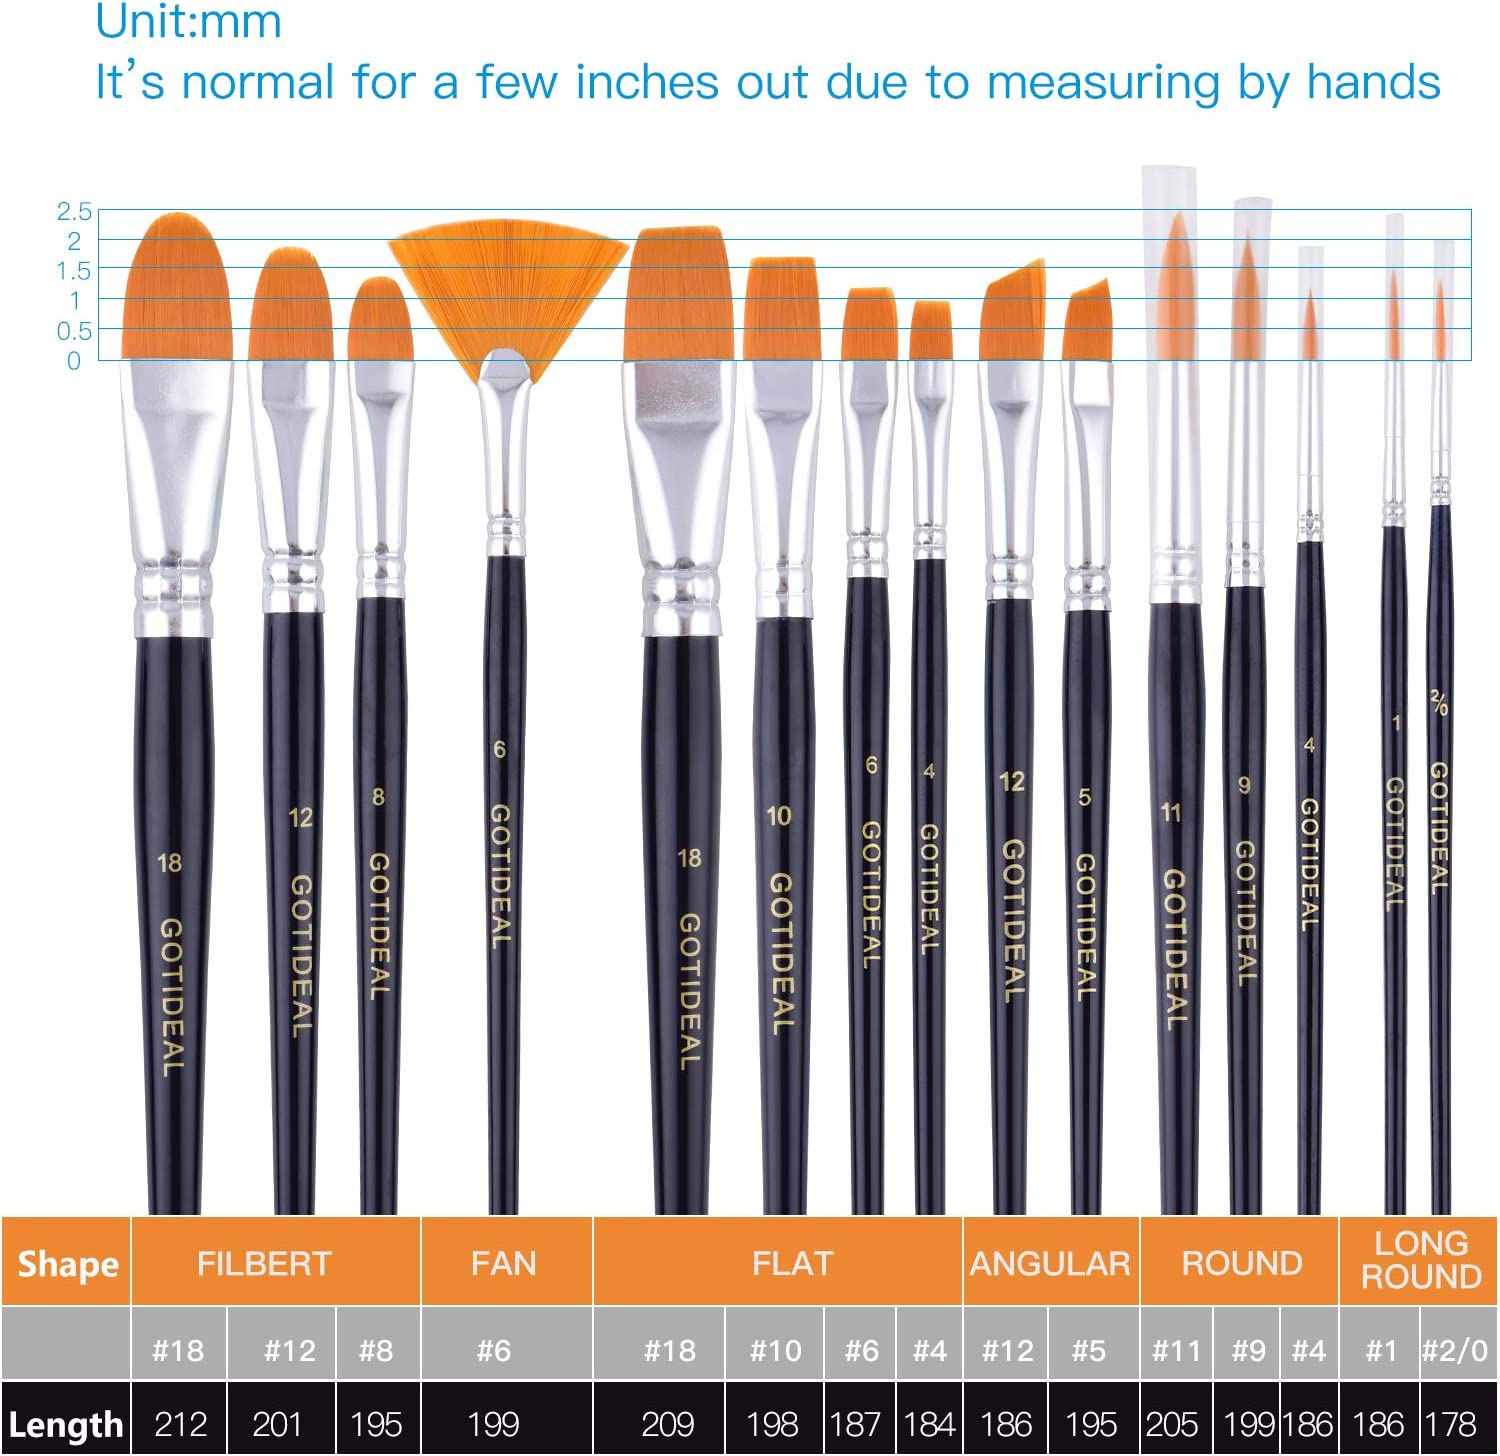 JKG/® 5 x Paint Brush Set Different Sizes Professional Strong Bristles Art Brushes for Decorating DIY Arts Crafts Painting Home Garden